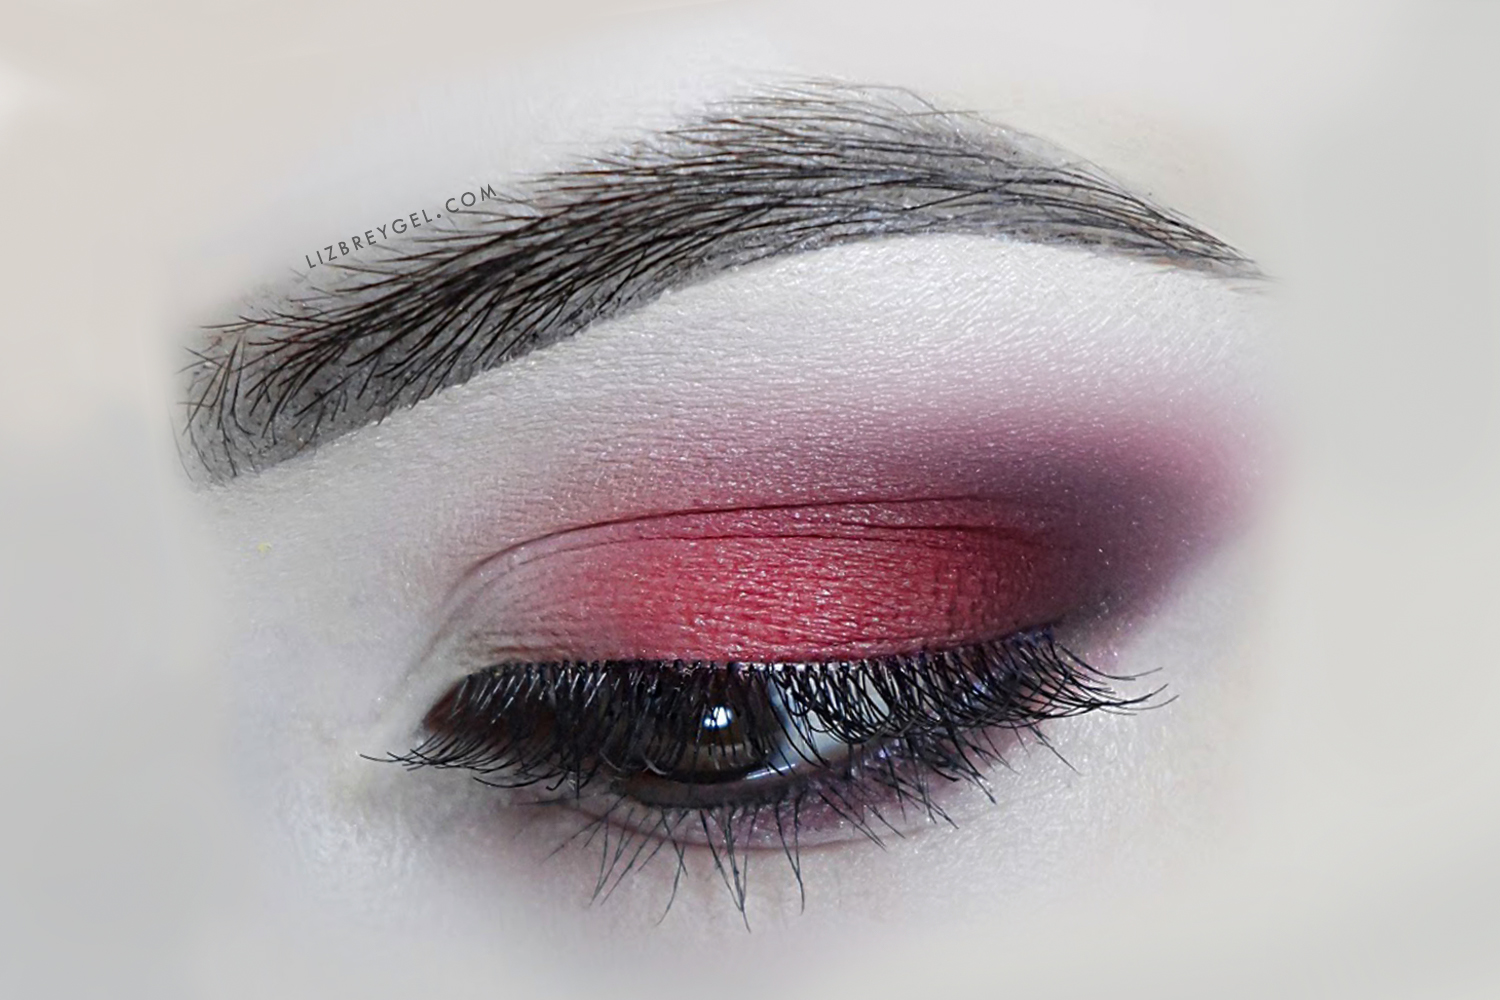 a clos eup picture of an eye with smoky makeup